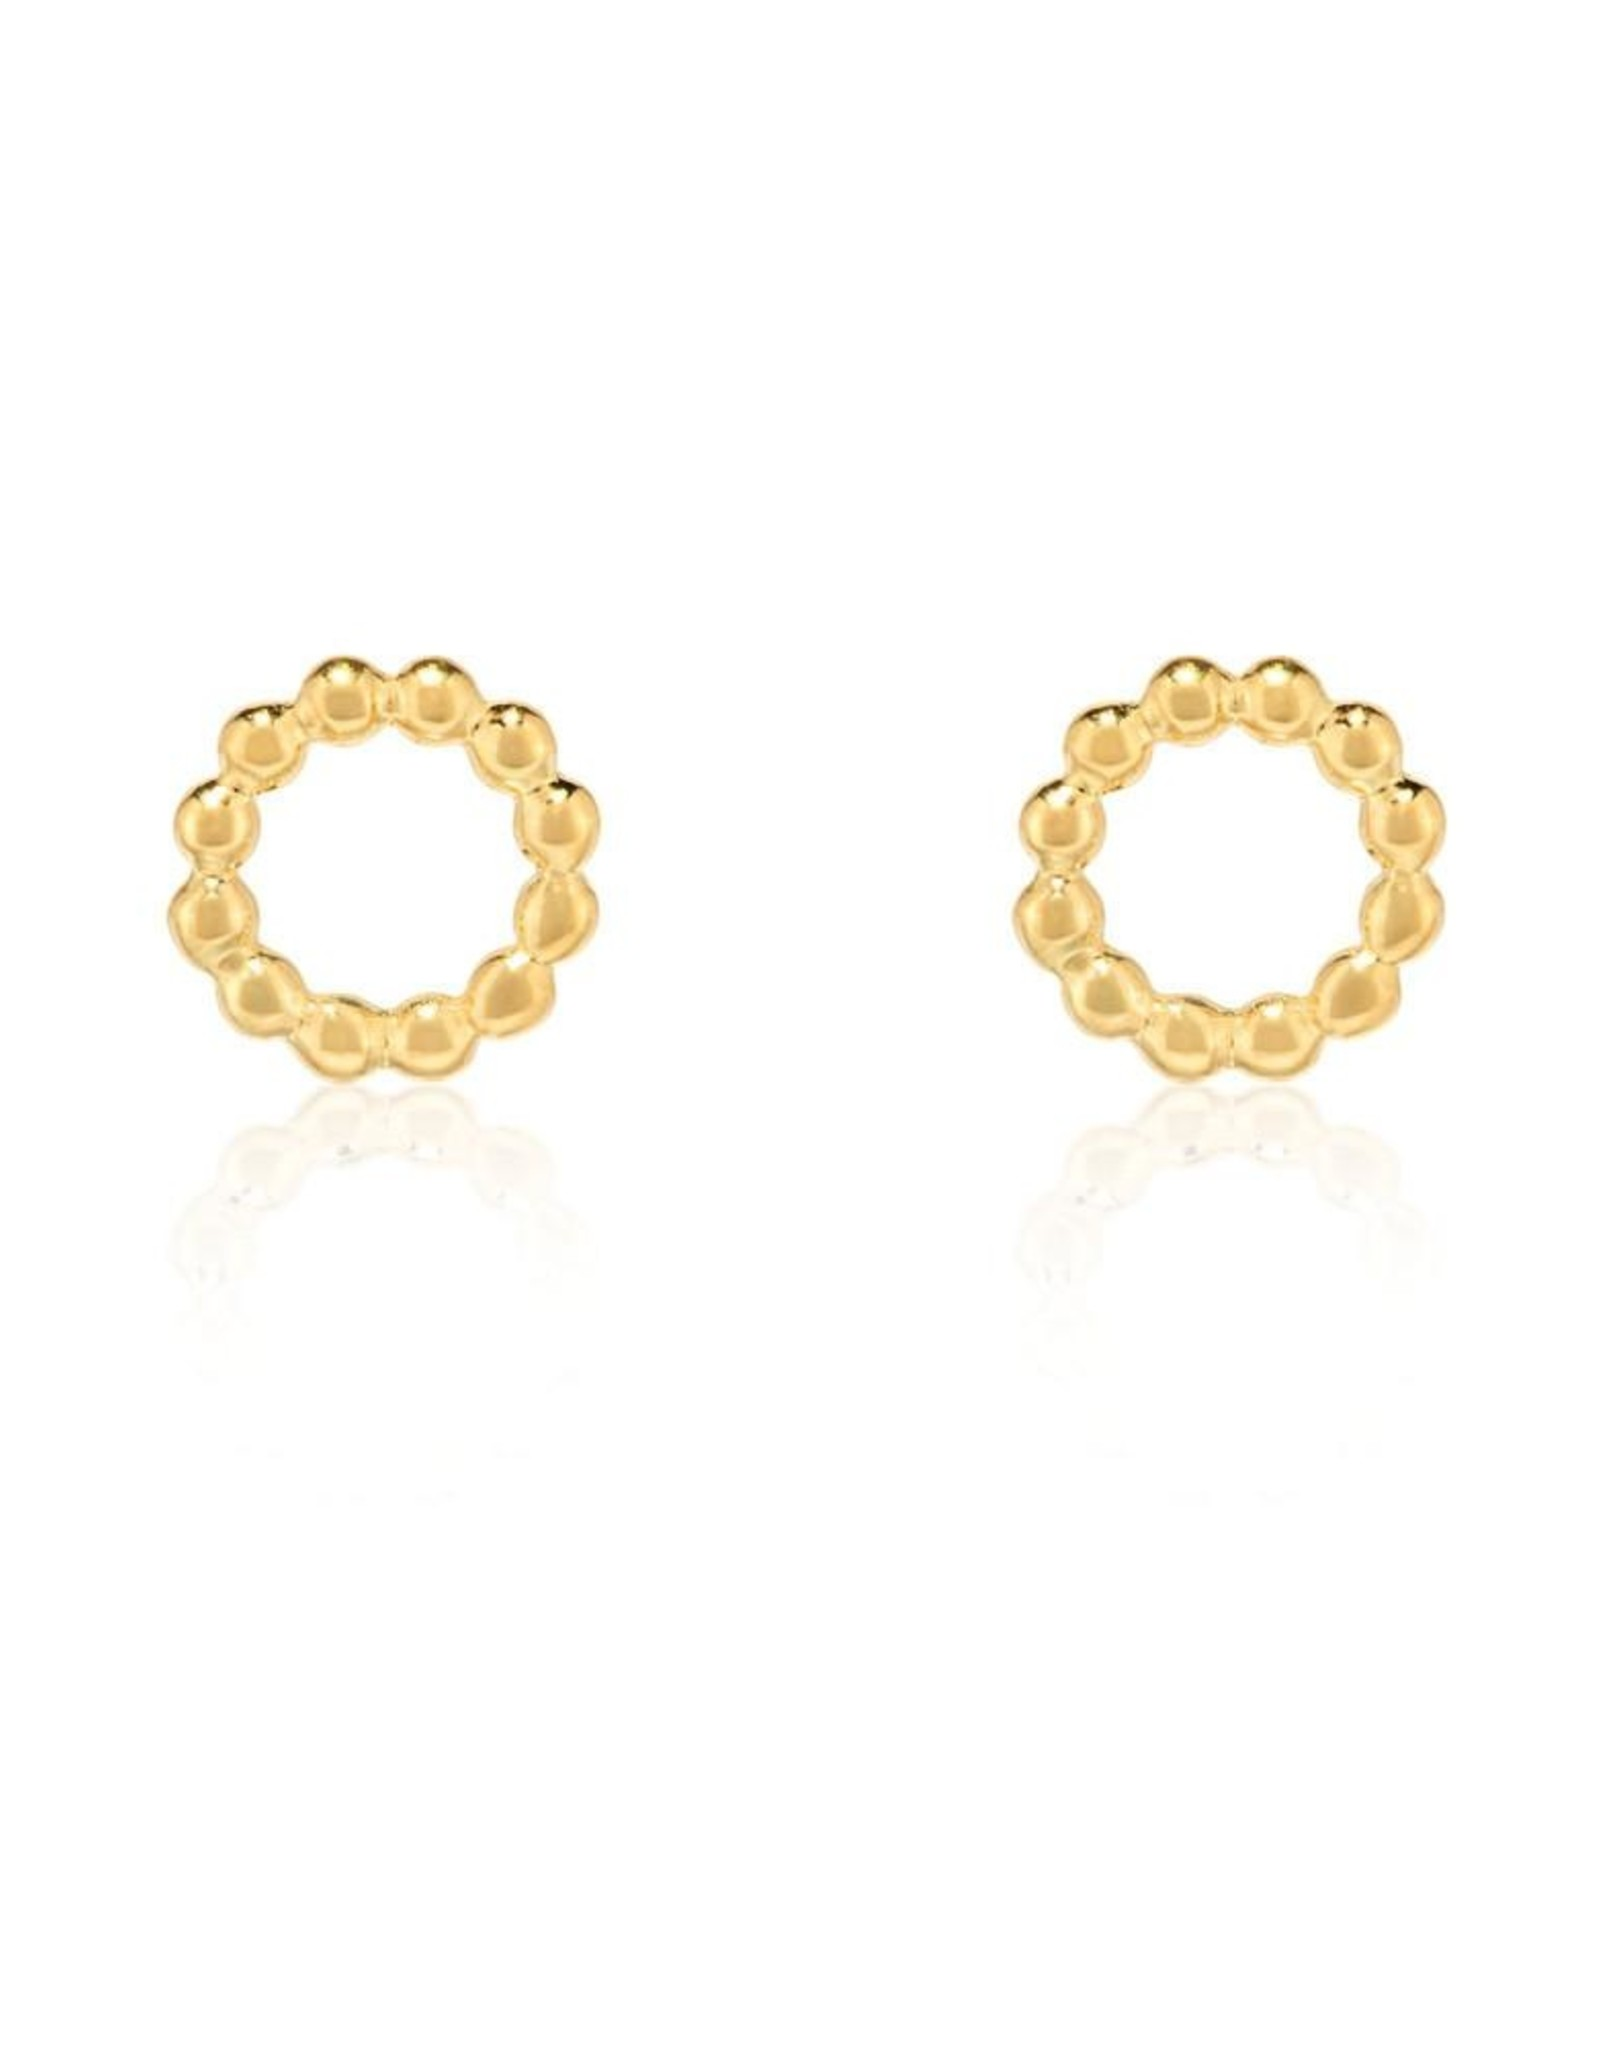 Beaded Circle Stud Earrings - Gold Plated Sterling Silver